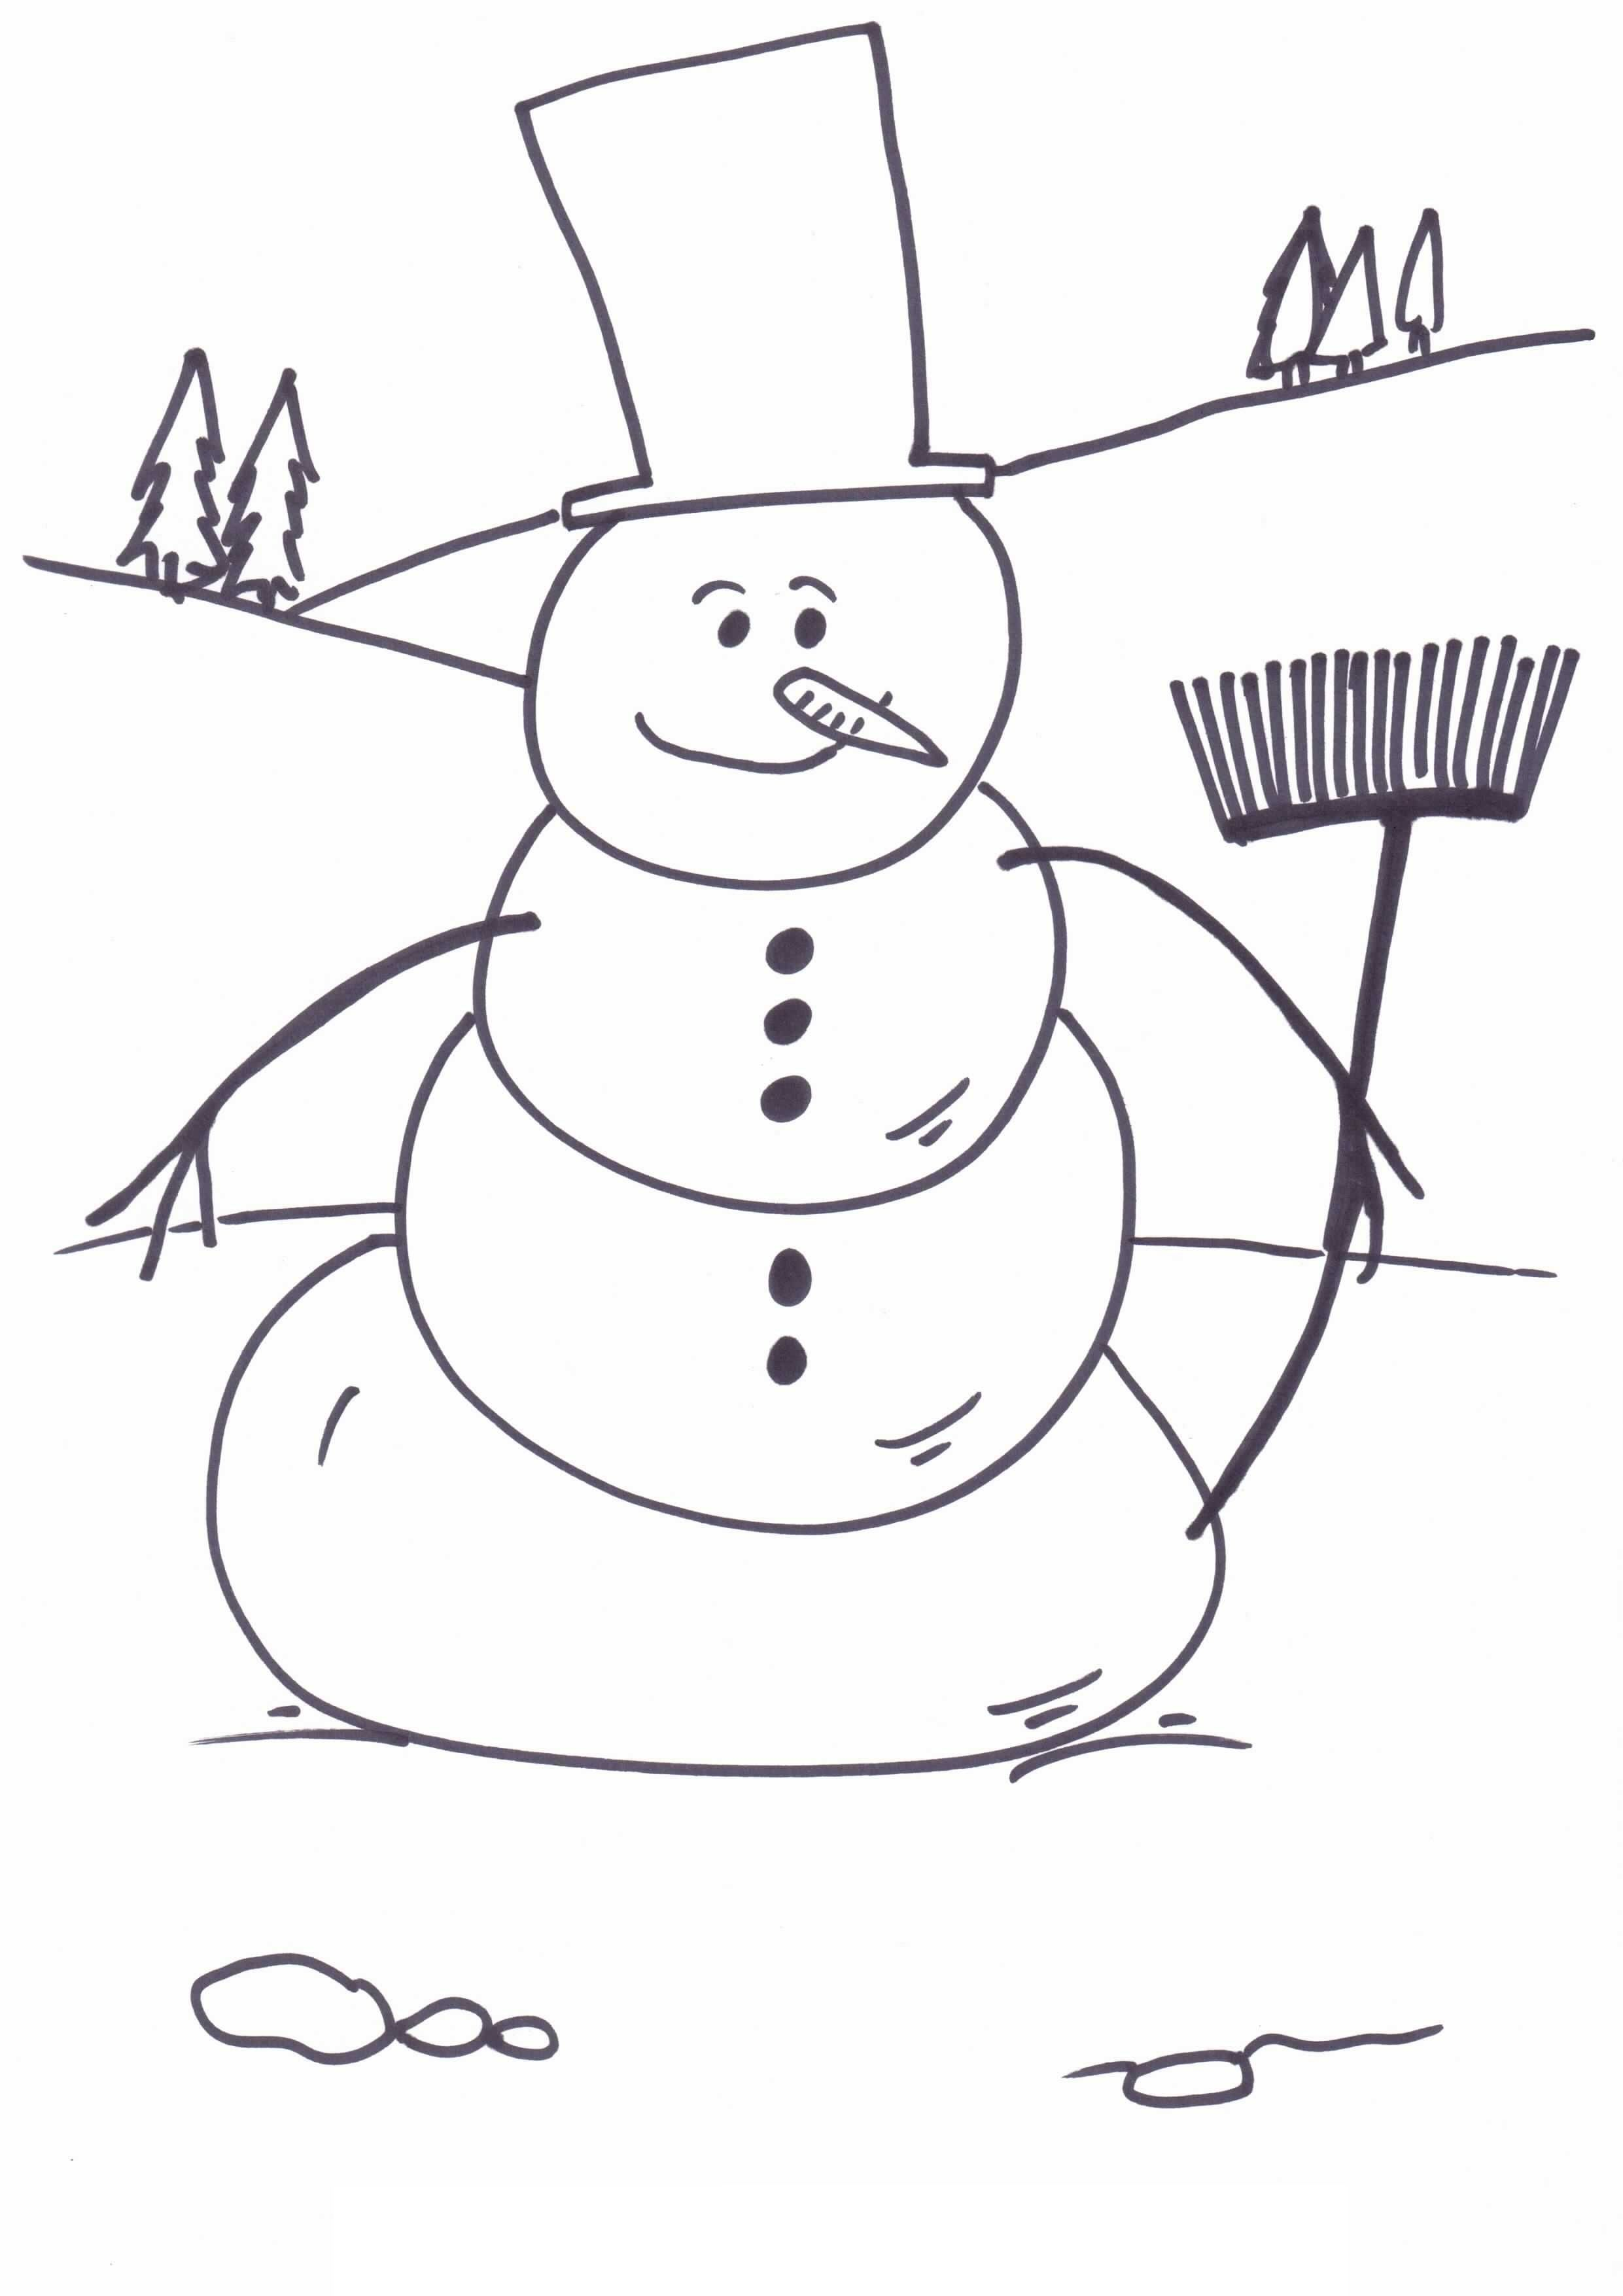 Snowman Coloring Pages Snowman coloring pages, Christmas